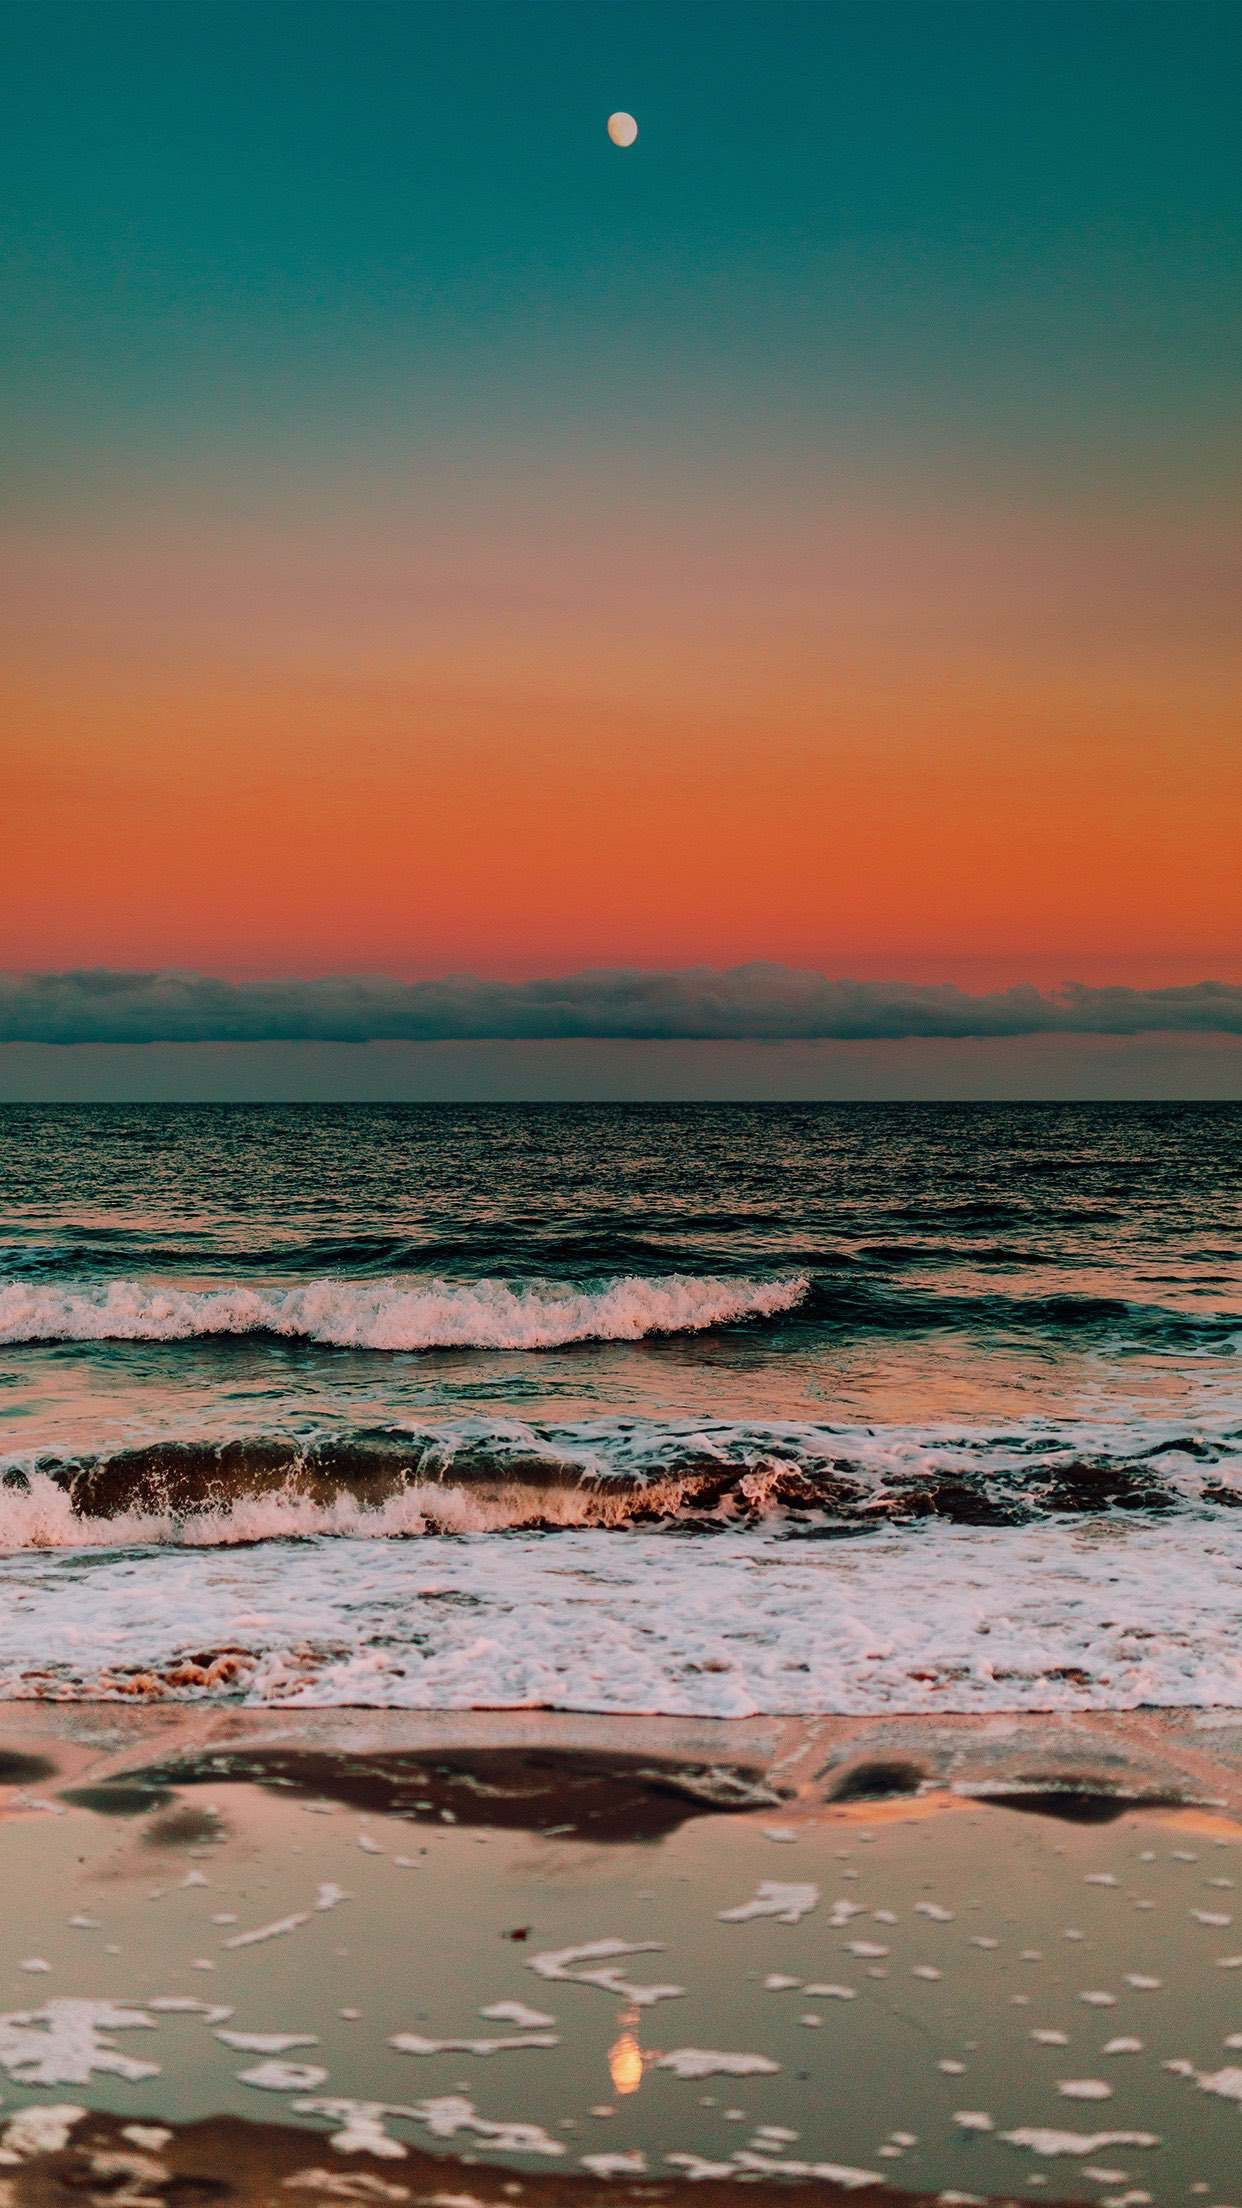 Pin By Martina Vera On Fondos In 2020 Beach Pictures Wallpaper Vsco Pictures Beach Aesthetic